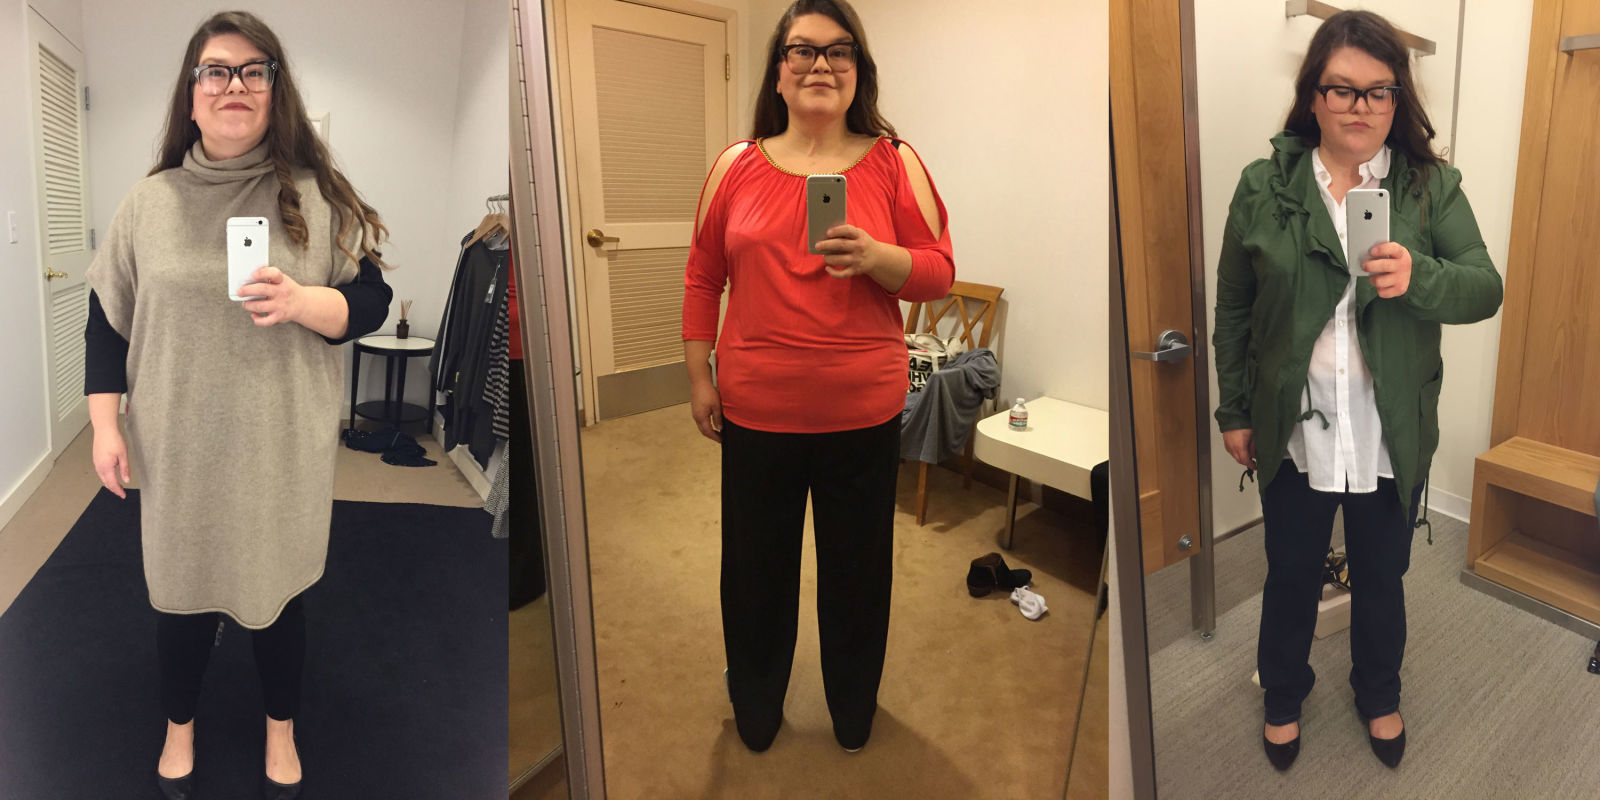 Size 16 Woman Asks 5 Stylists To Dress Her In Flattering Outfits